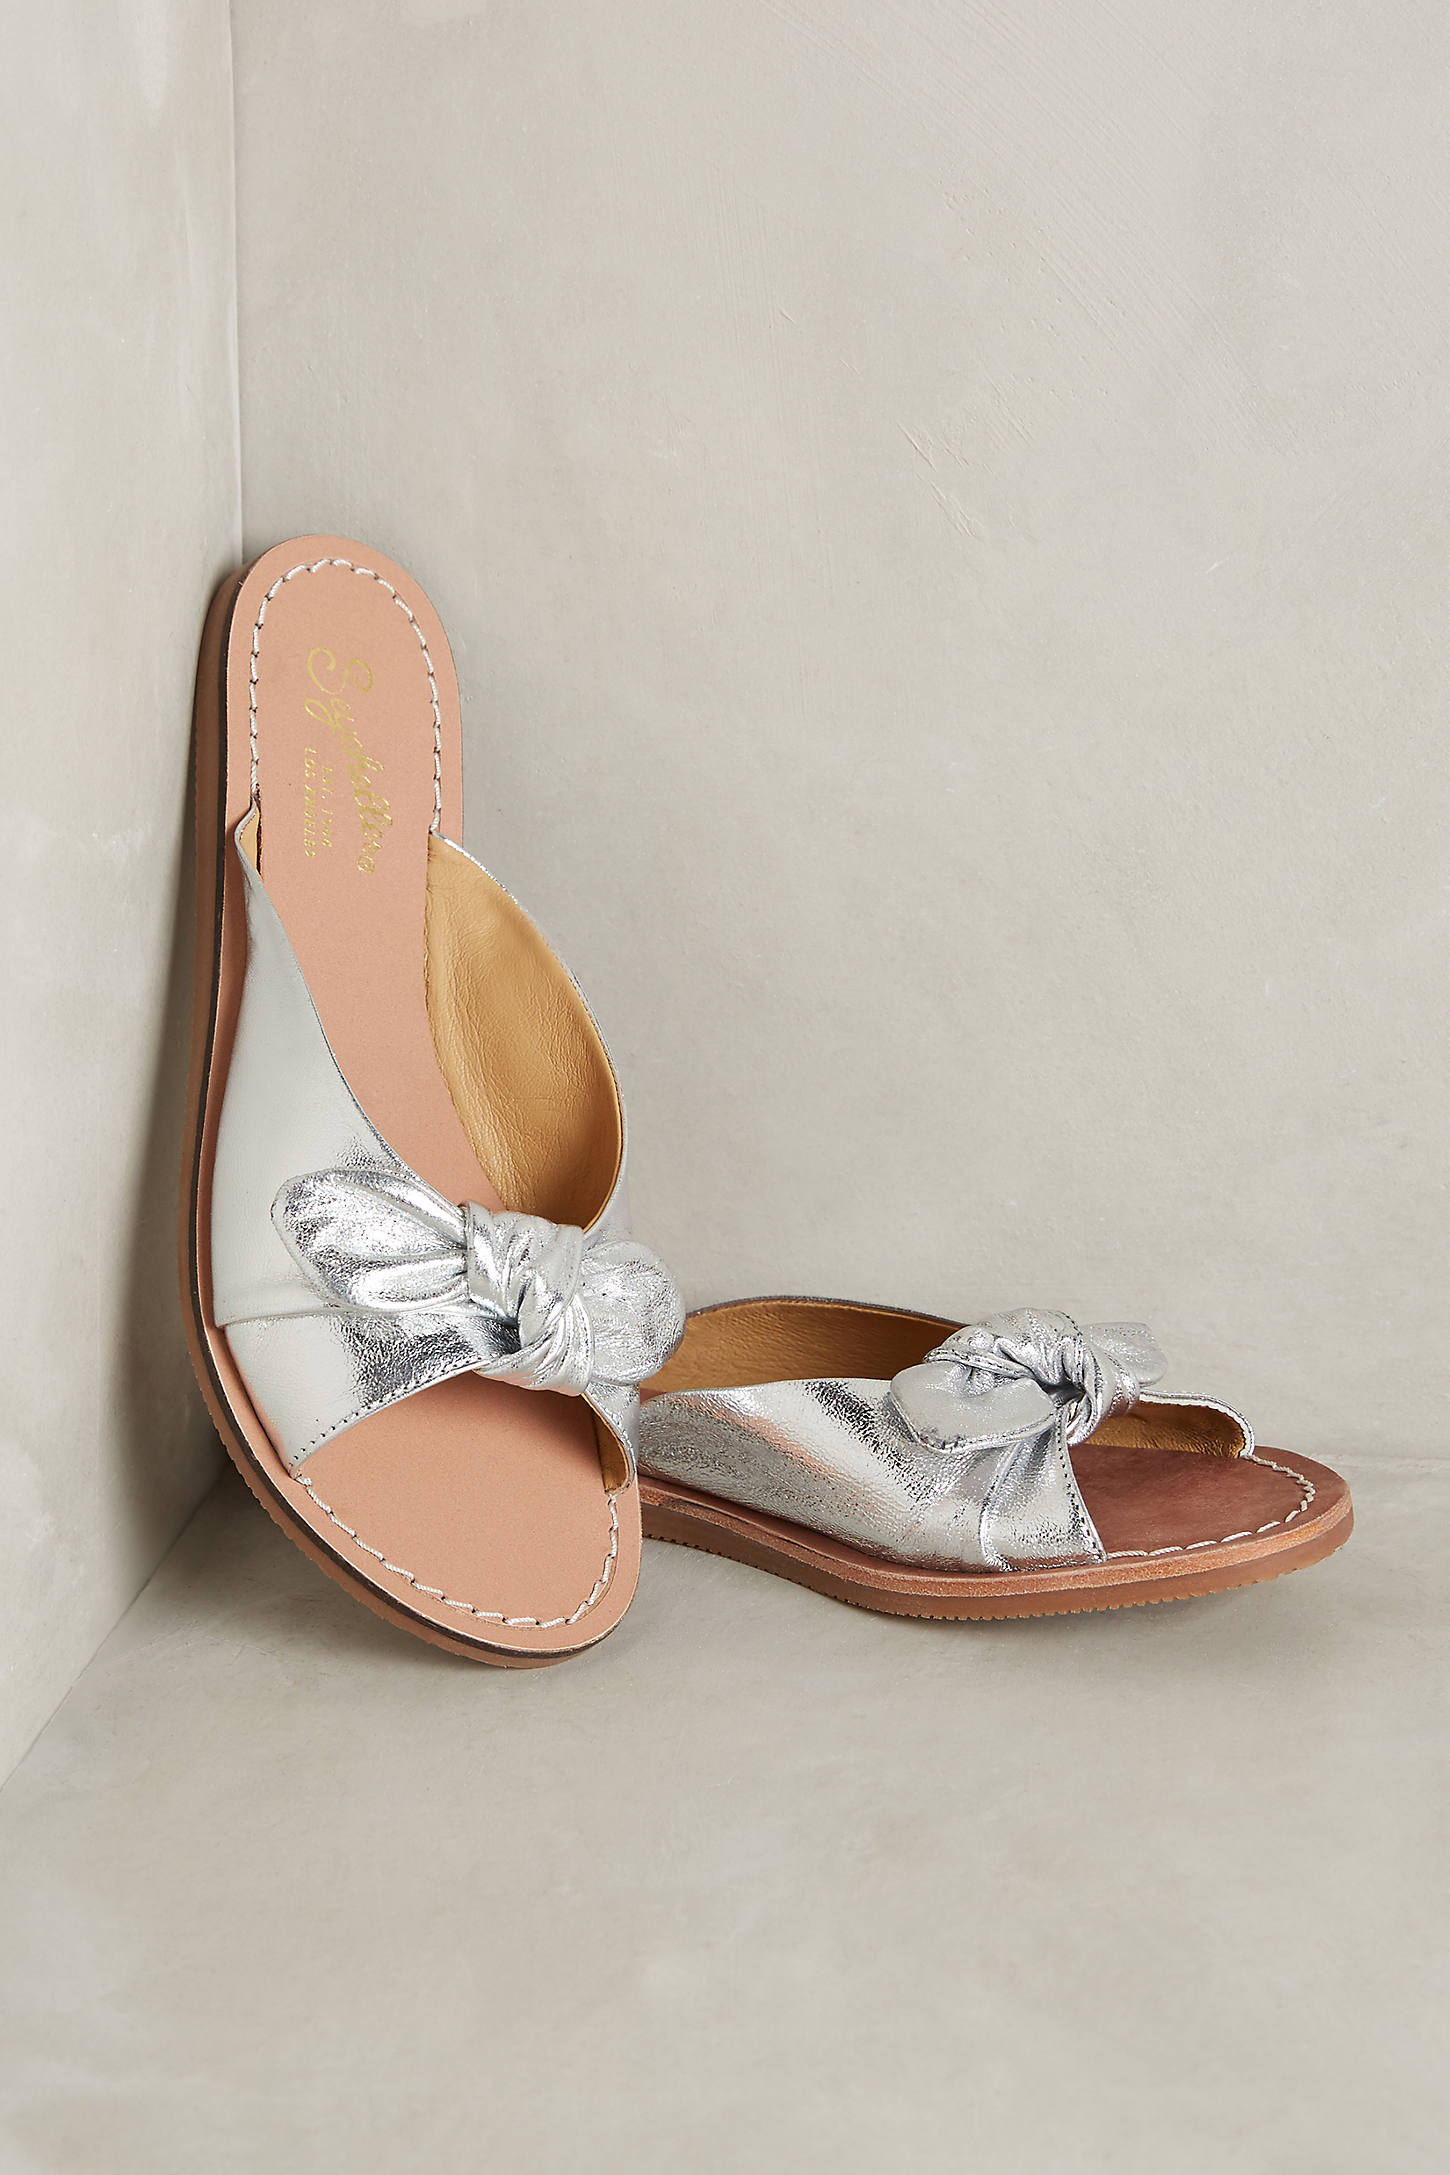 Seychelles Moonlight Slide Sandals